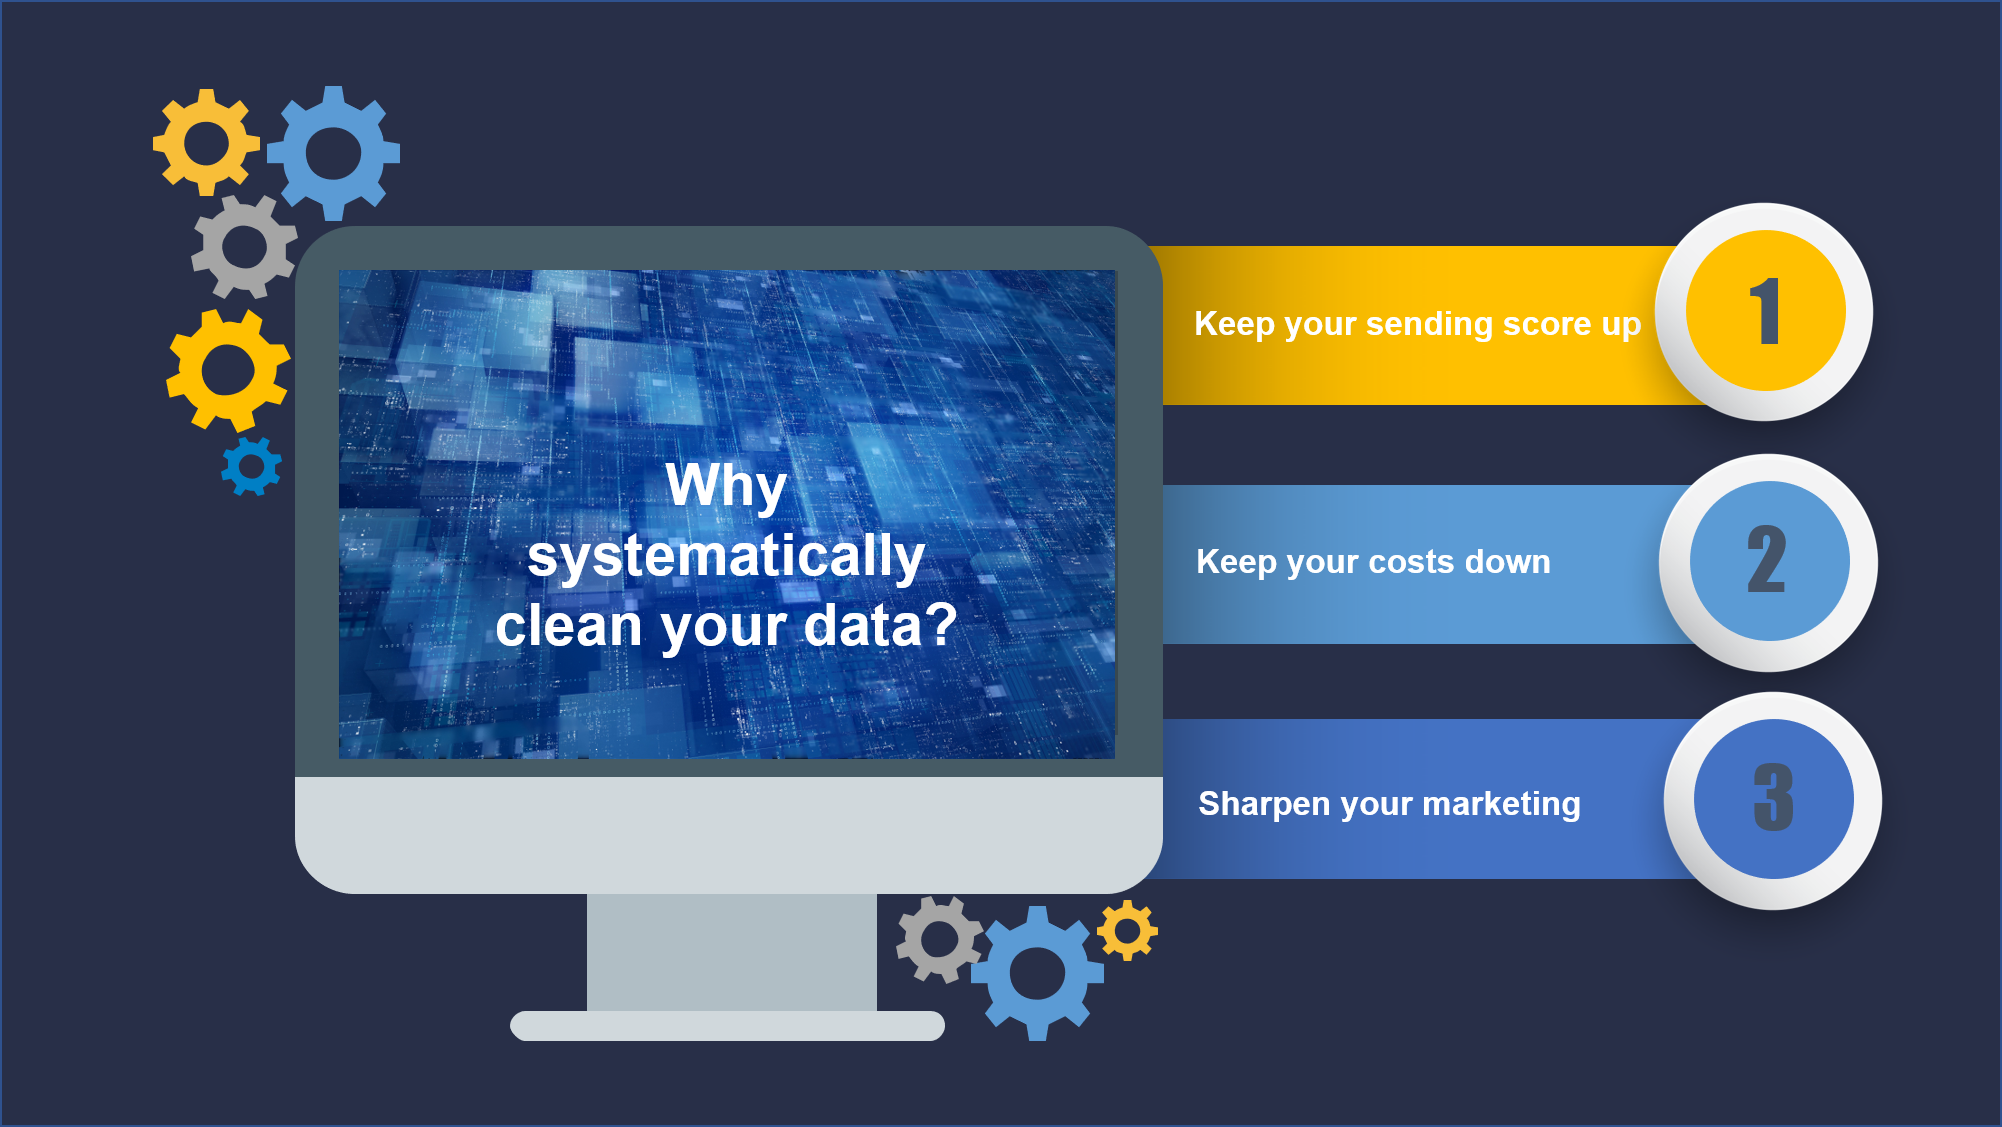 Why systematically clean your data